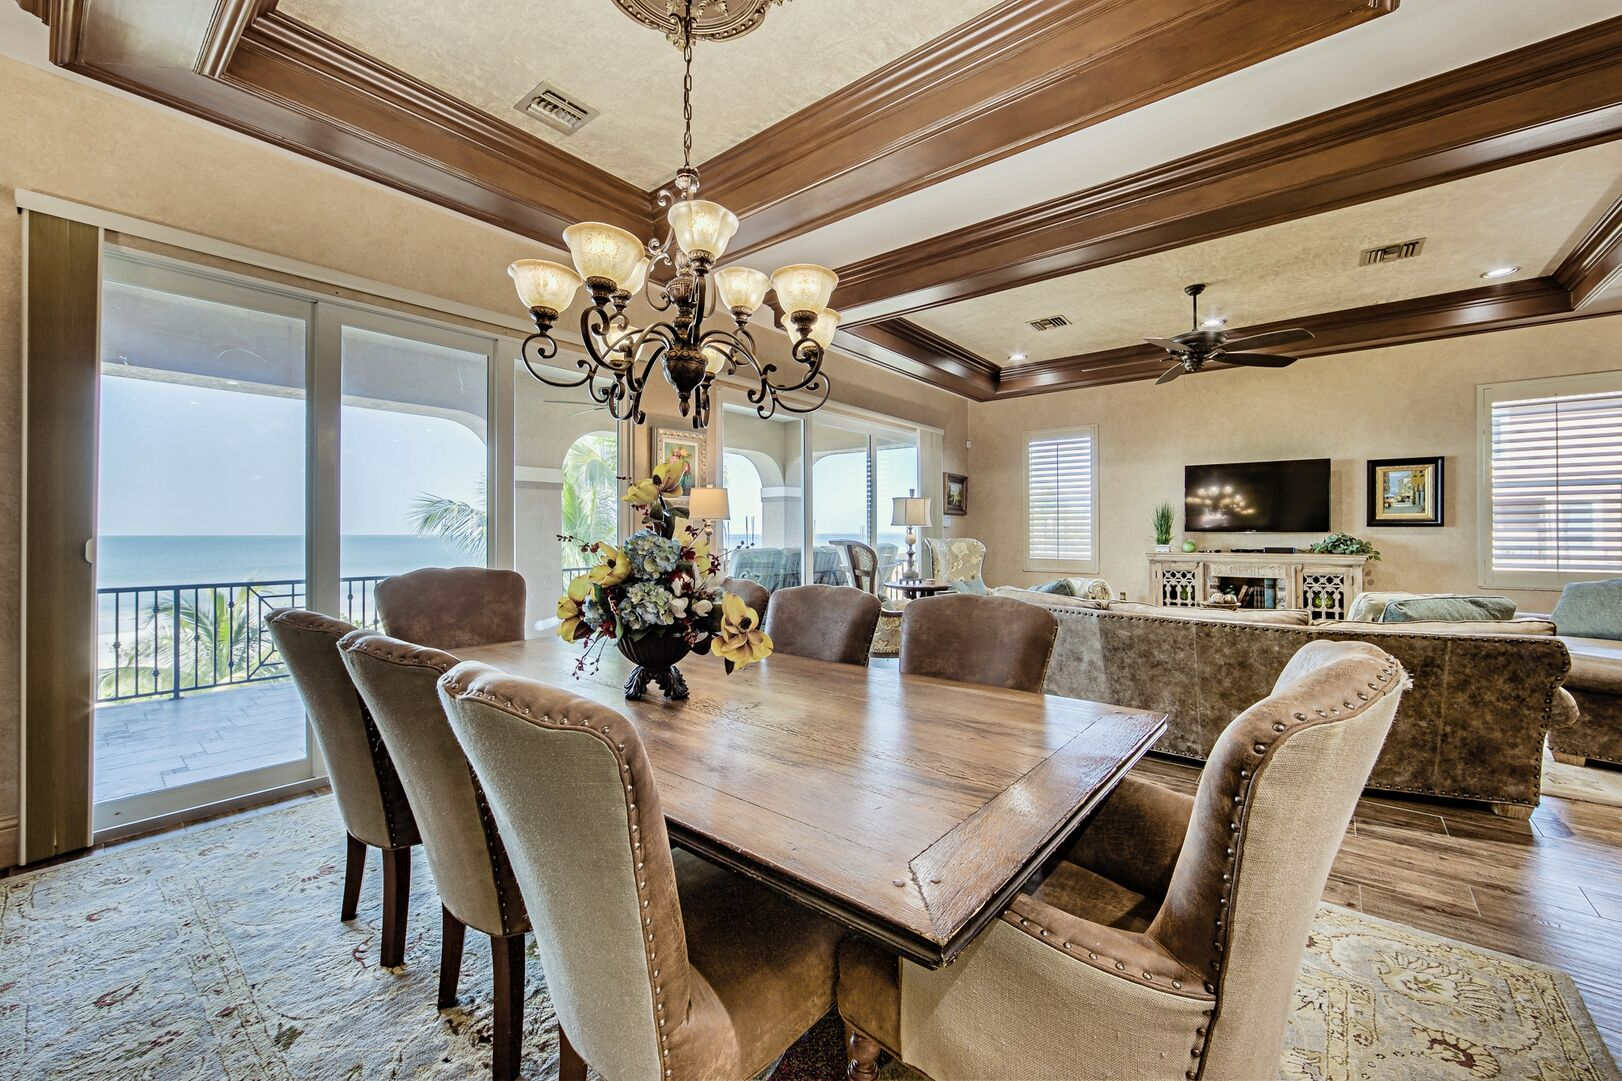 Dining Set, Sofas, TV, Ceiling Fan, and Sliding Doors to the Balcony with Gulf View.